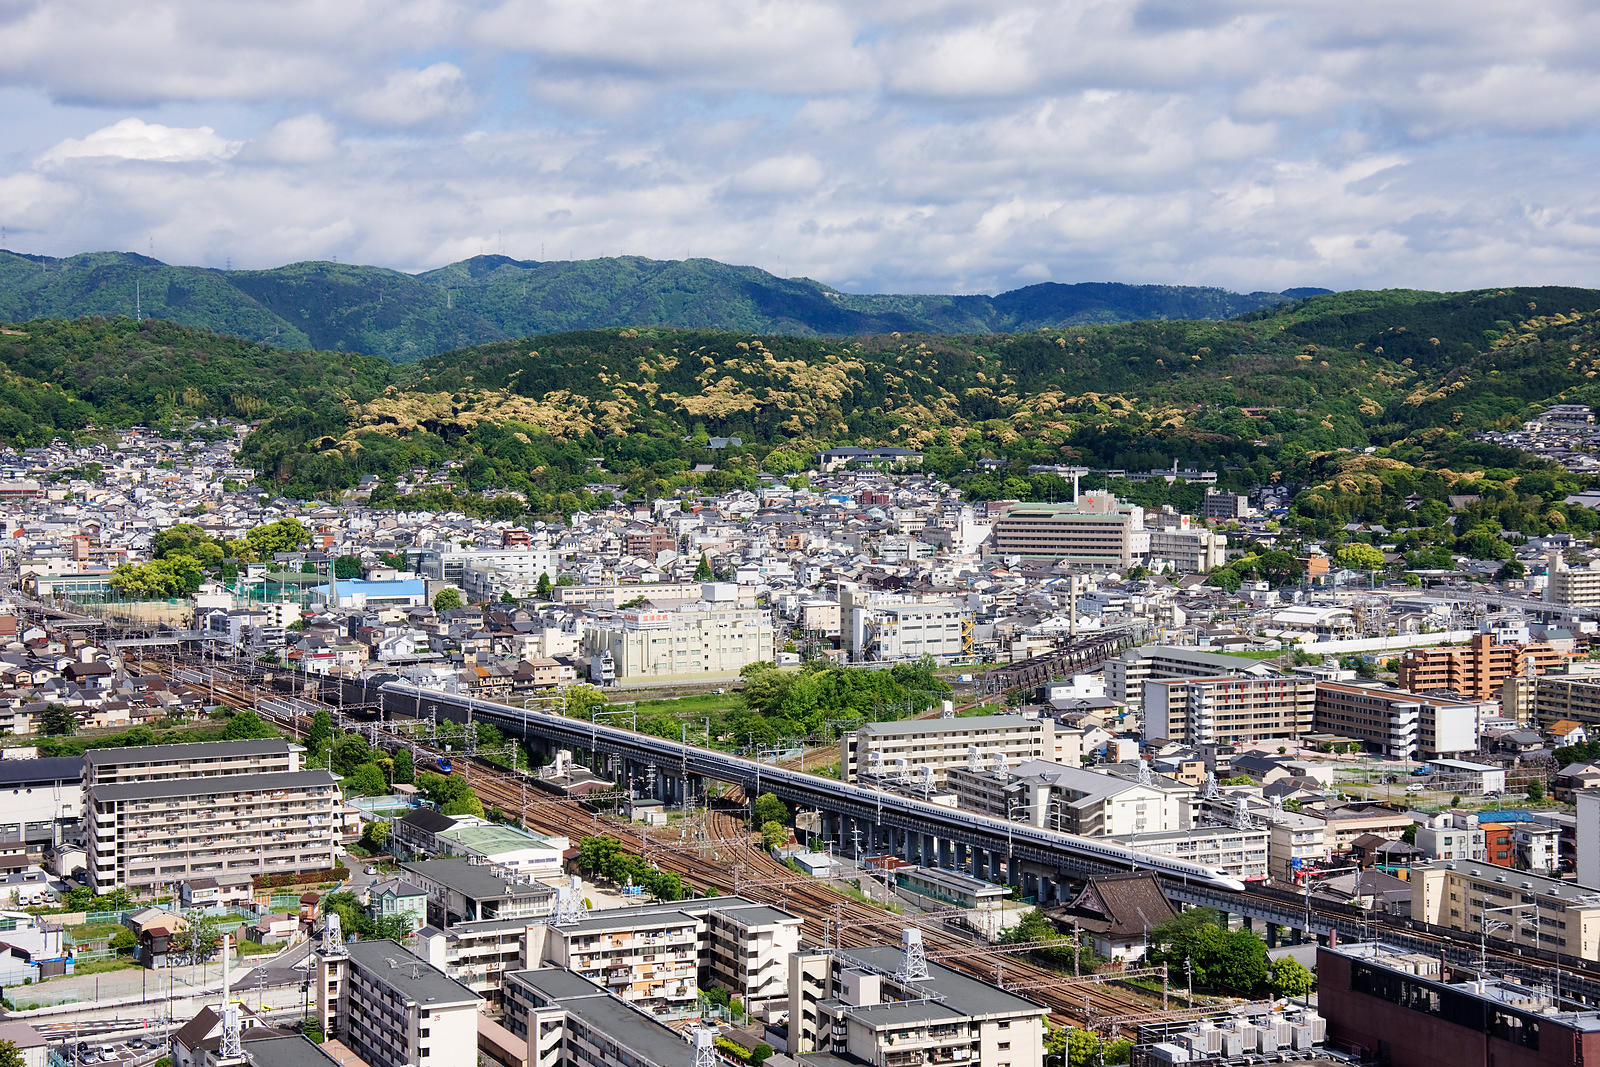 Aerial View of Kyoto from the Kyoto Tower